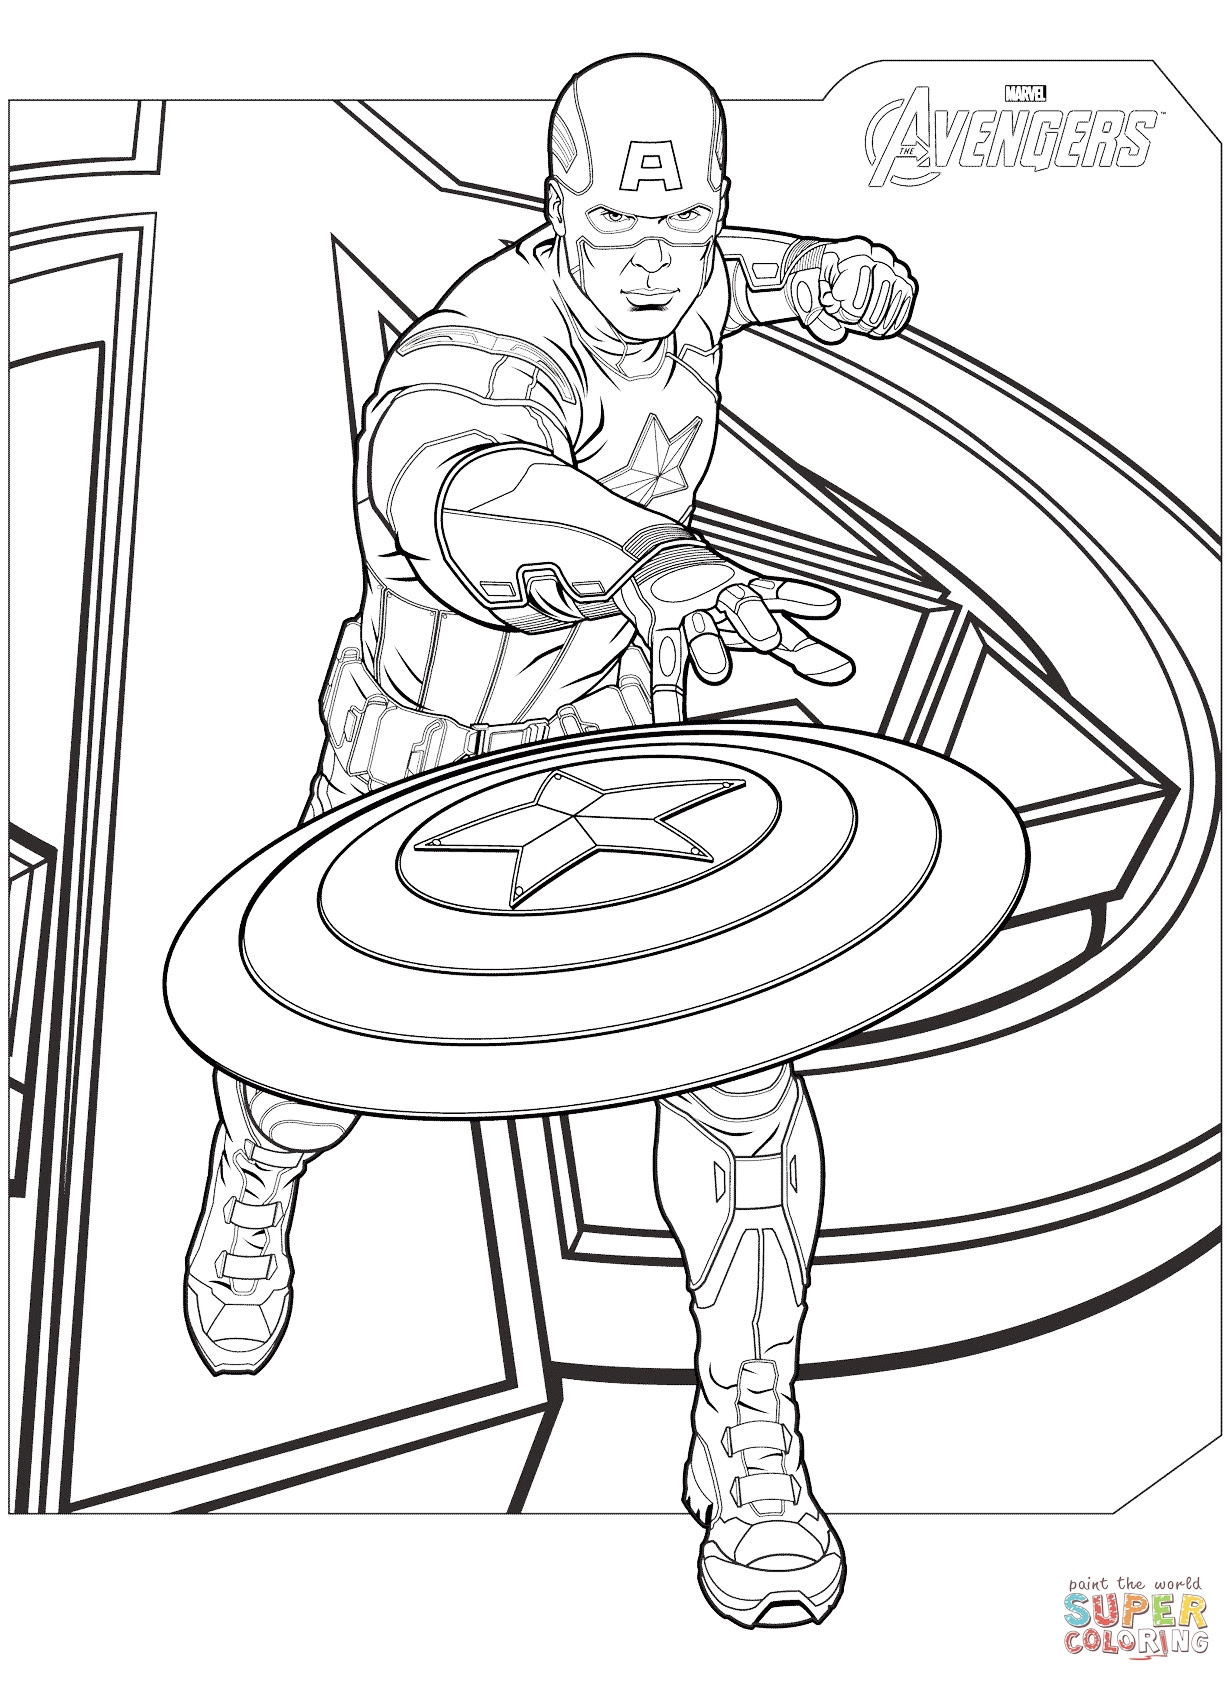 Download Avengers Coloring Pages For Kids at GetDrawings | Free download